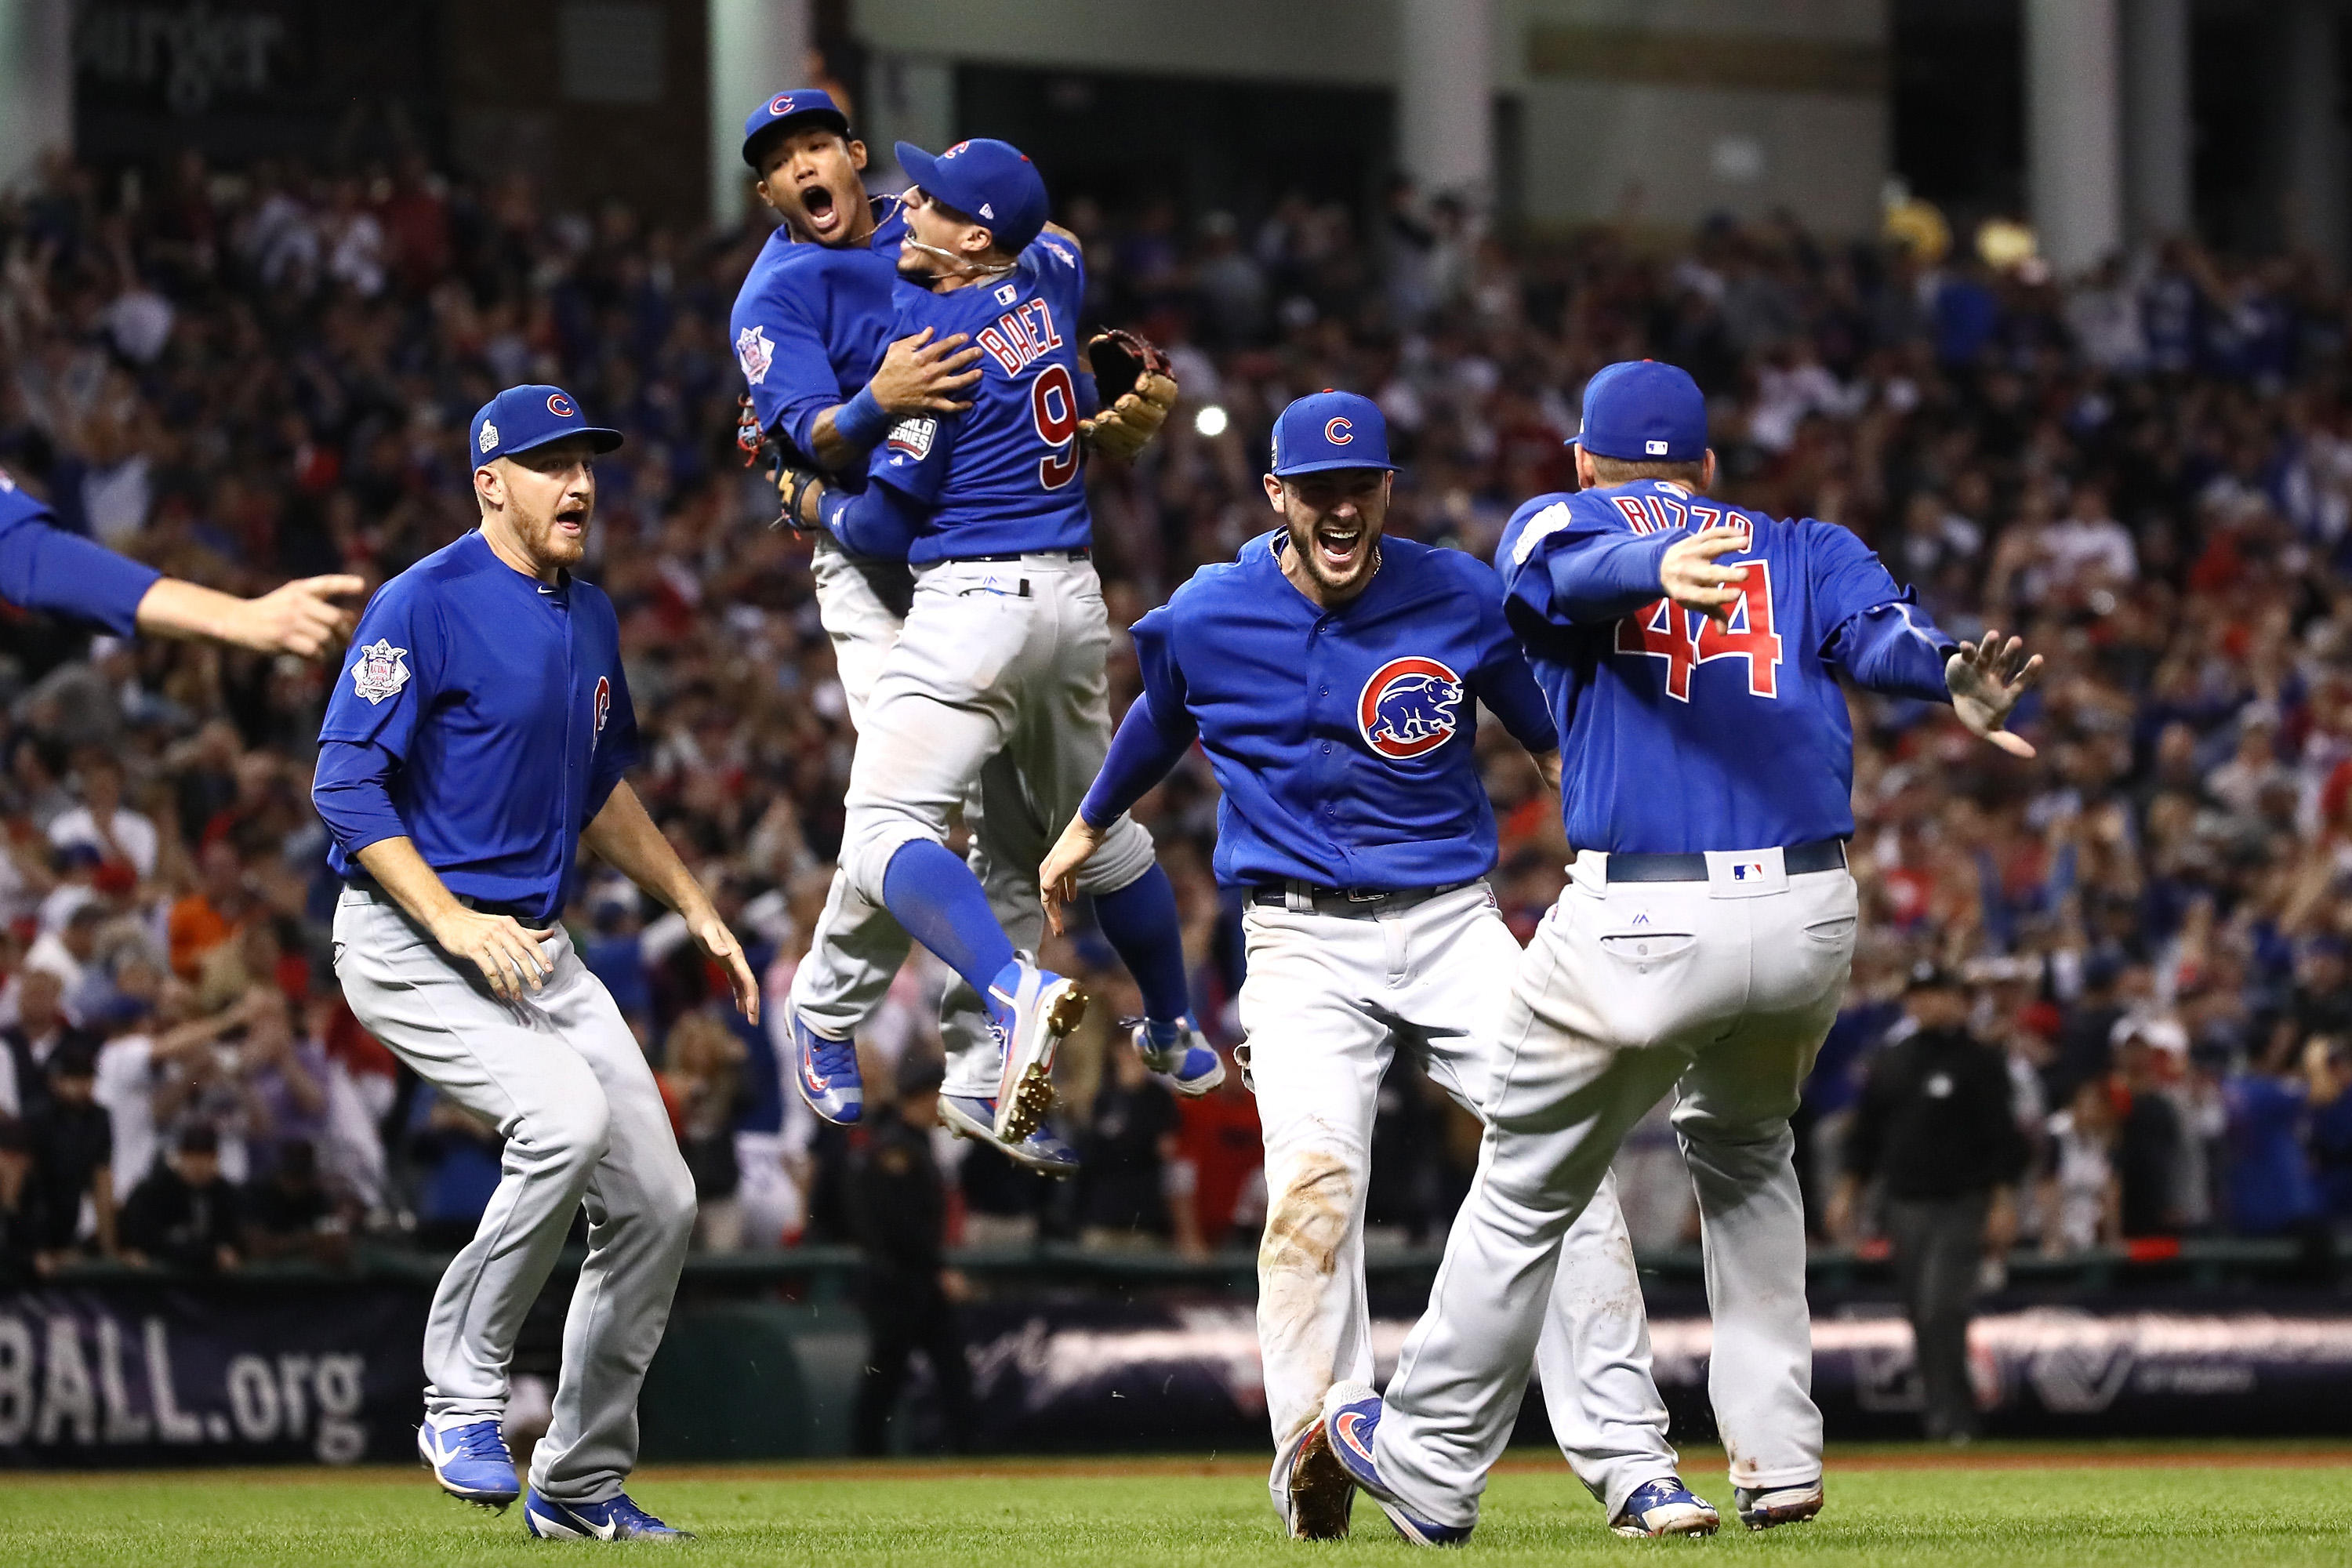 Chicago cubs world series victory is ap s 2016 sports story of the year cbs news